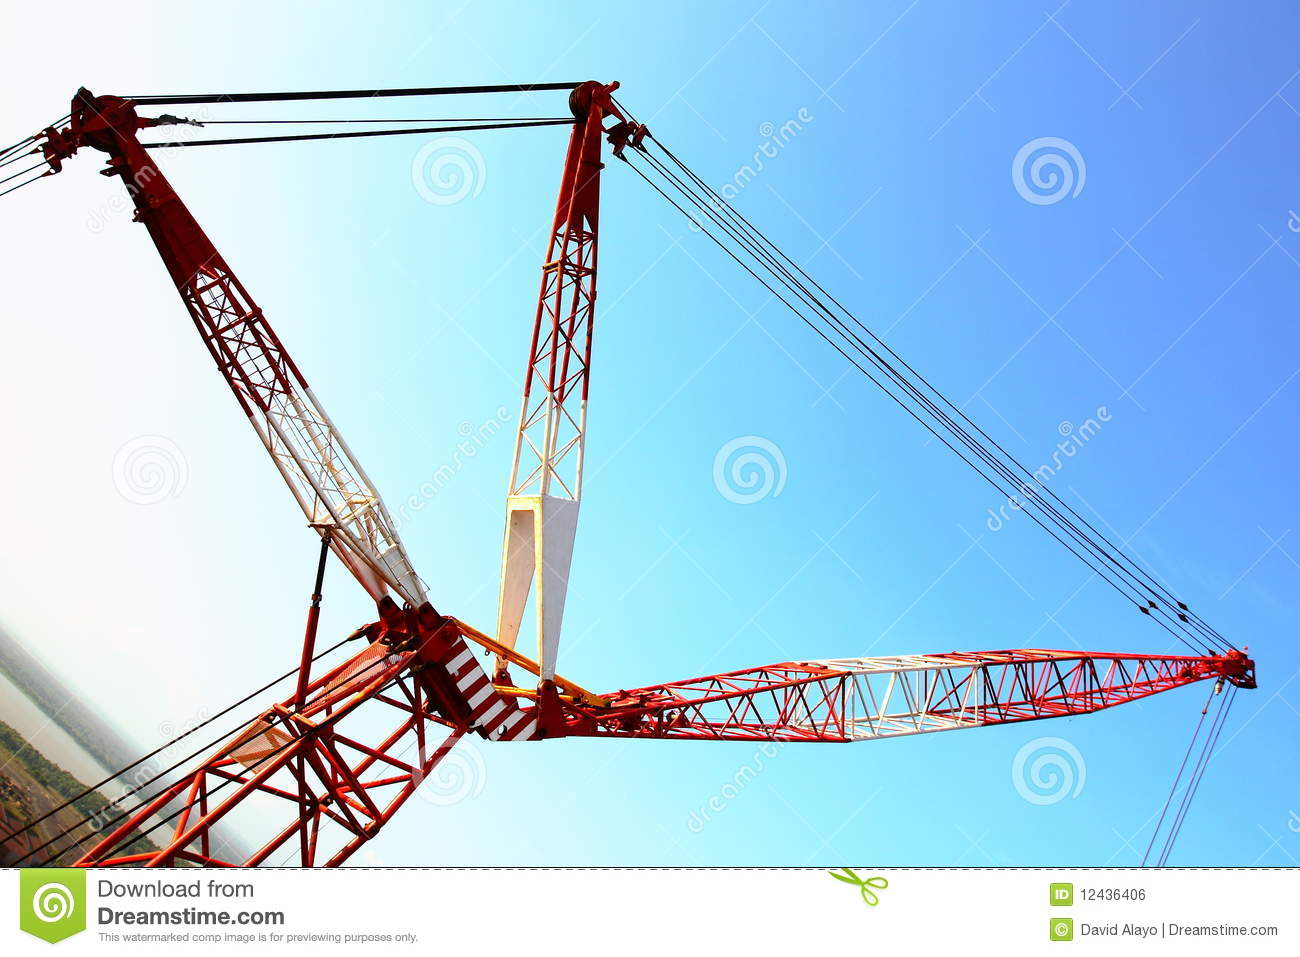 Pulleys In Cranes : Crane pulleys royalty free stock image